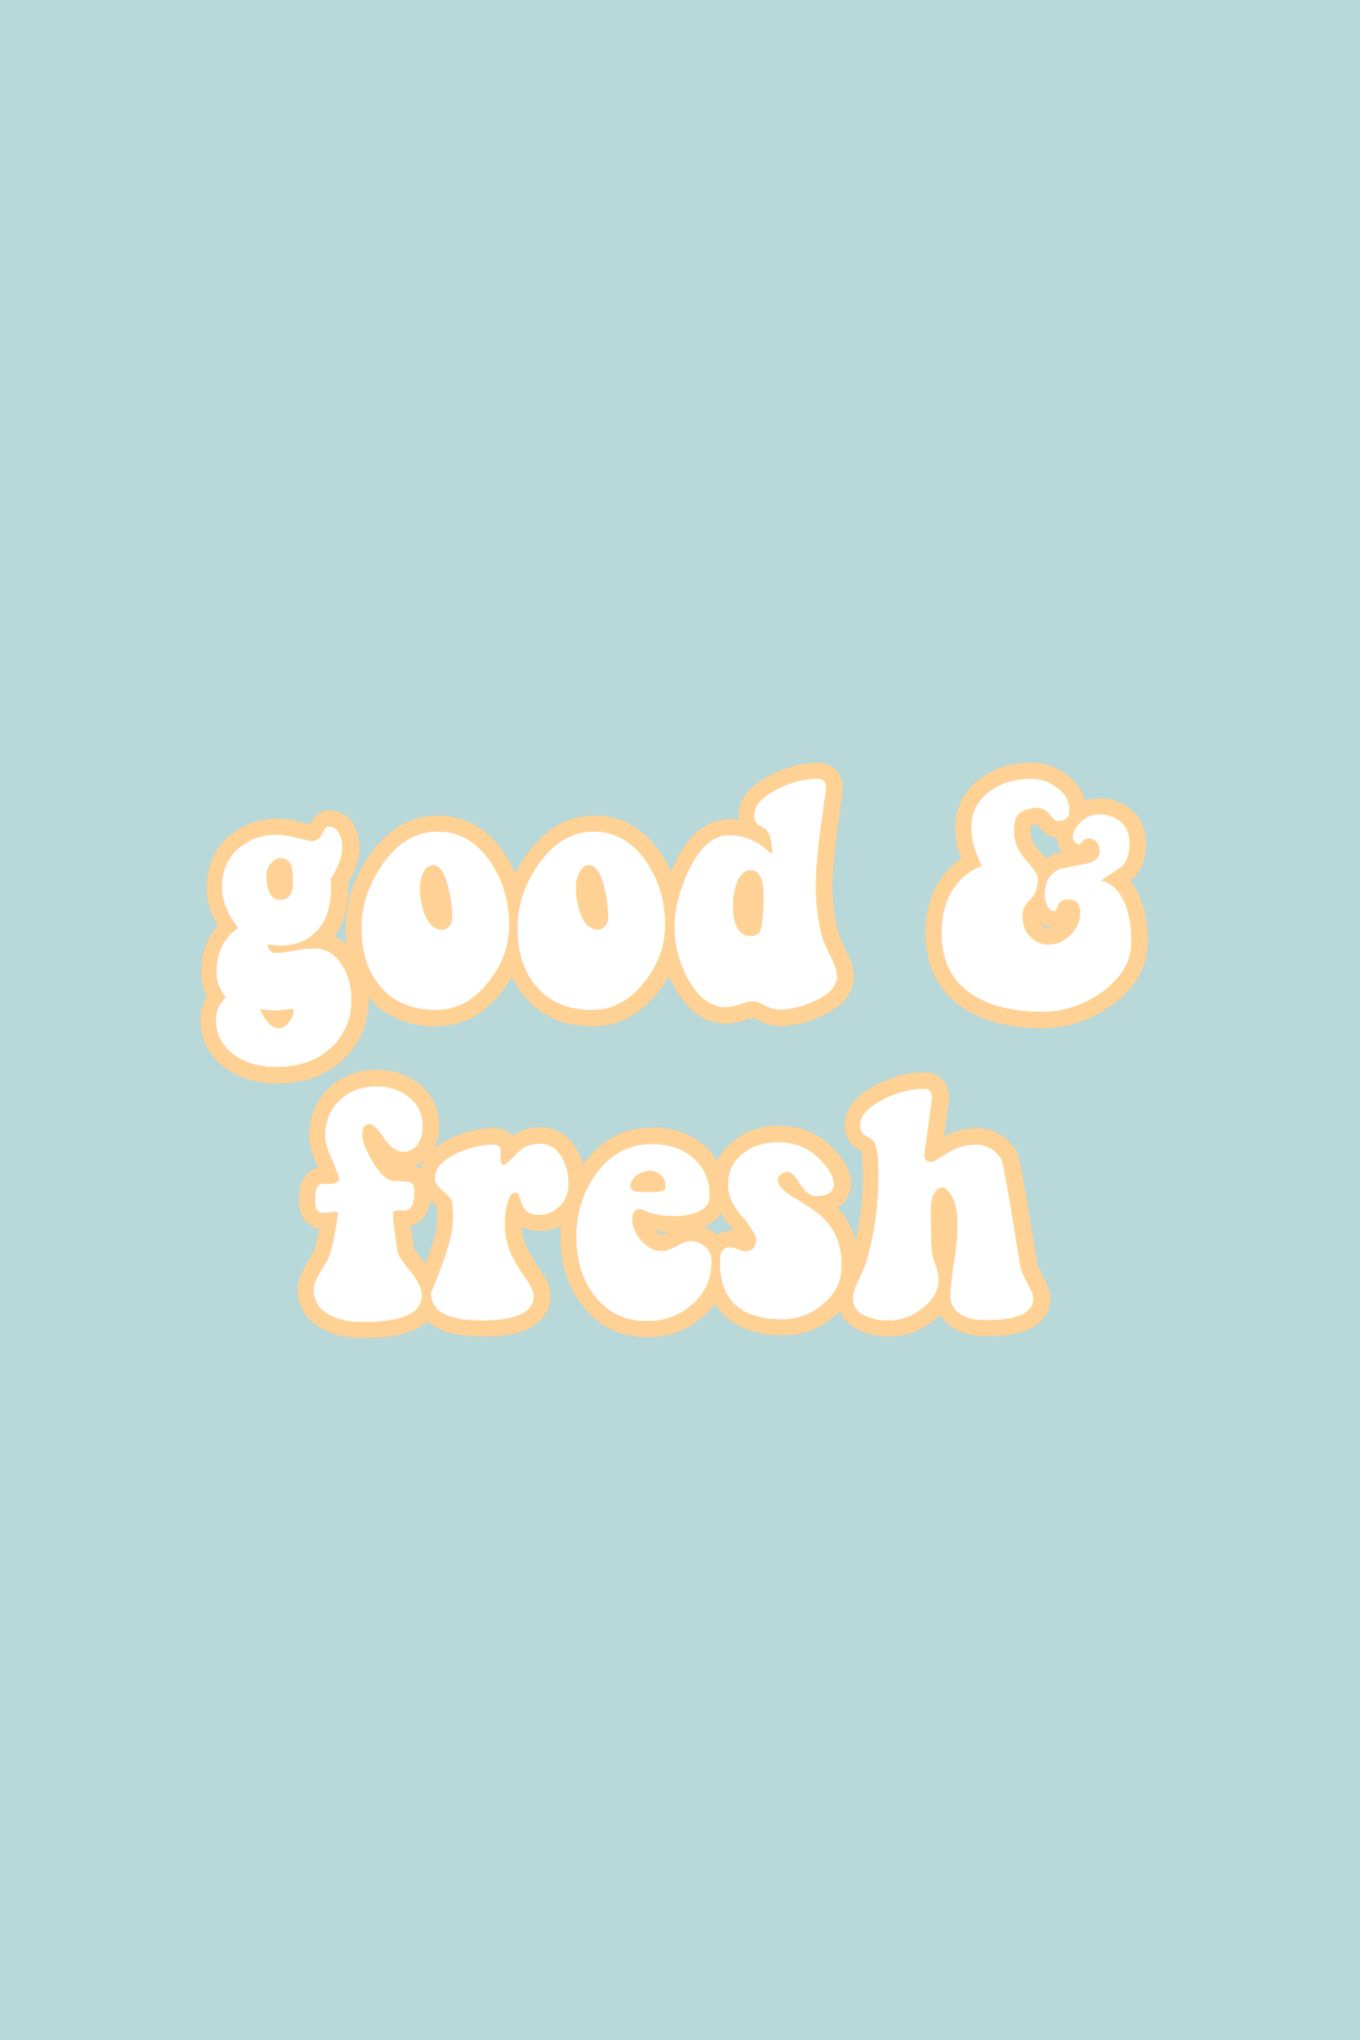 good and fresh quote words teal yellow aesthetic iphone